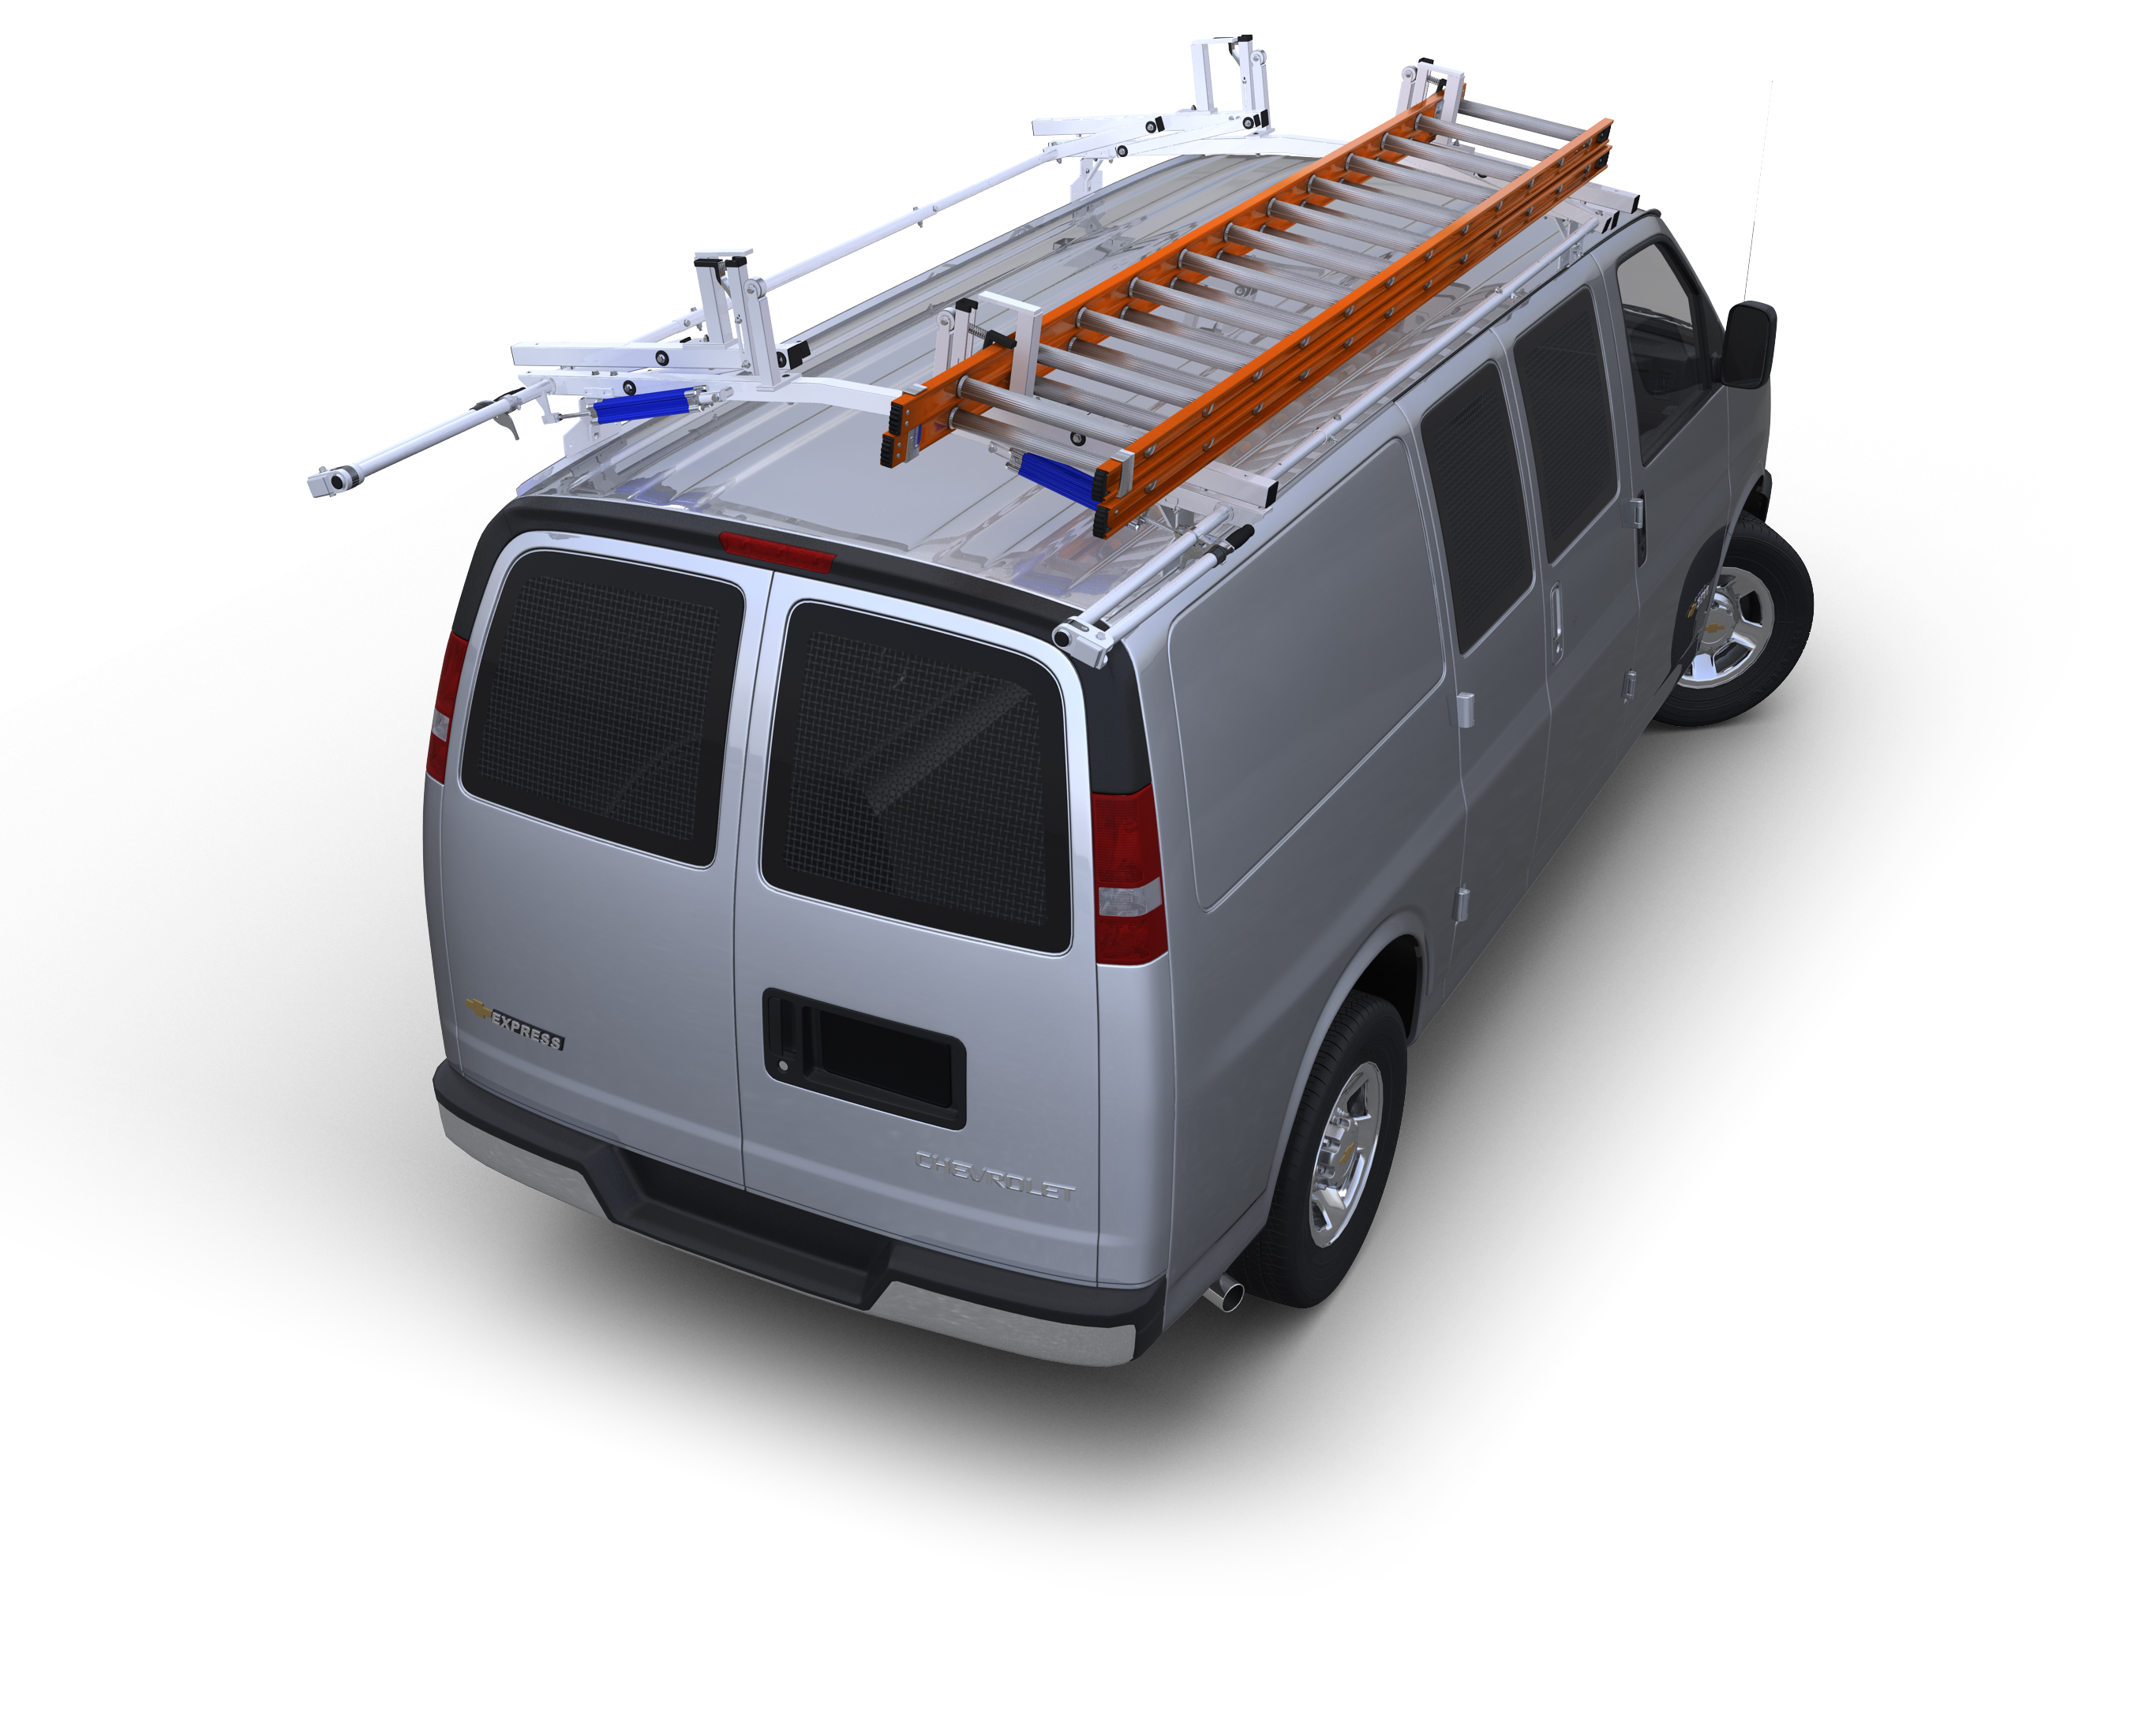 Chevy City Express Electrician Van Package, Aluminum Shelving - SAVE $100!